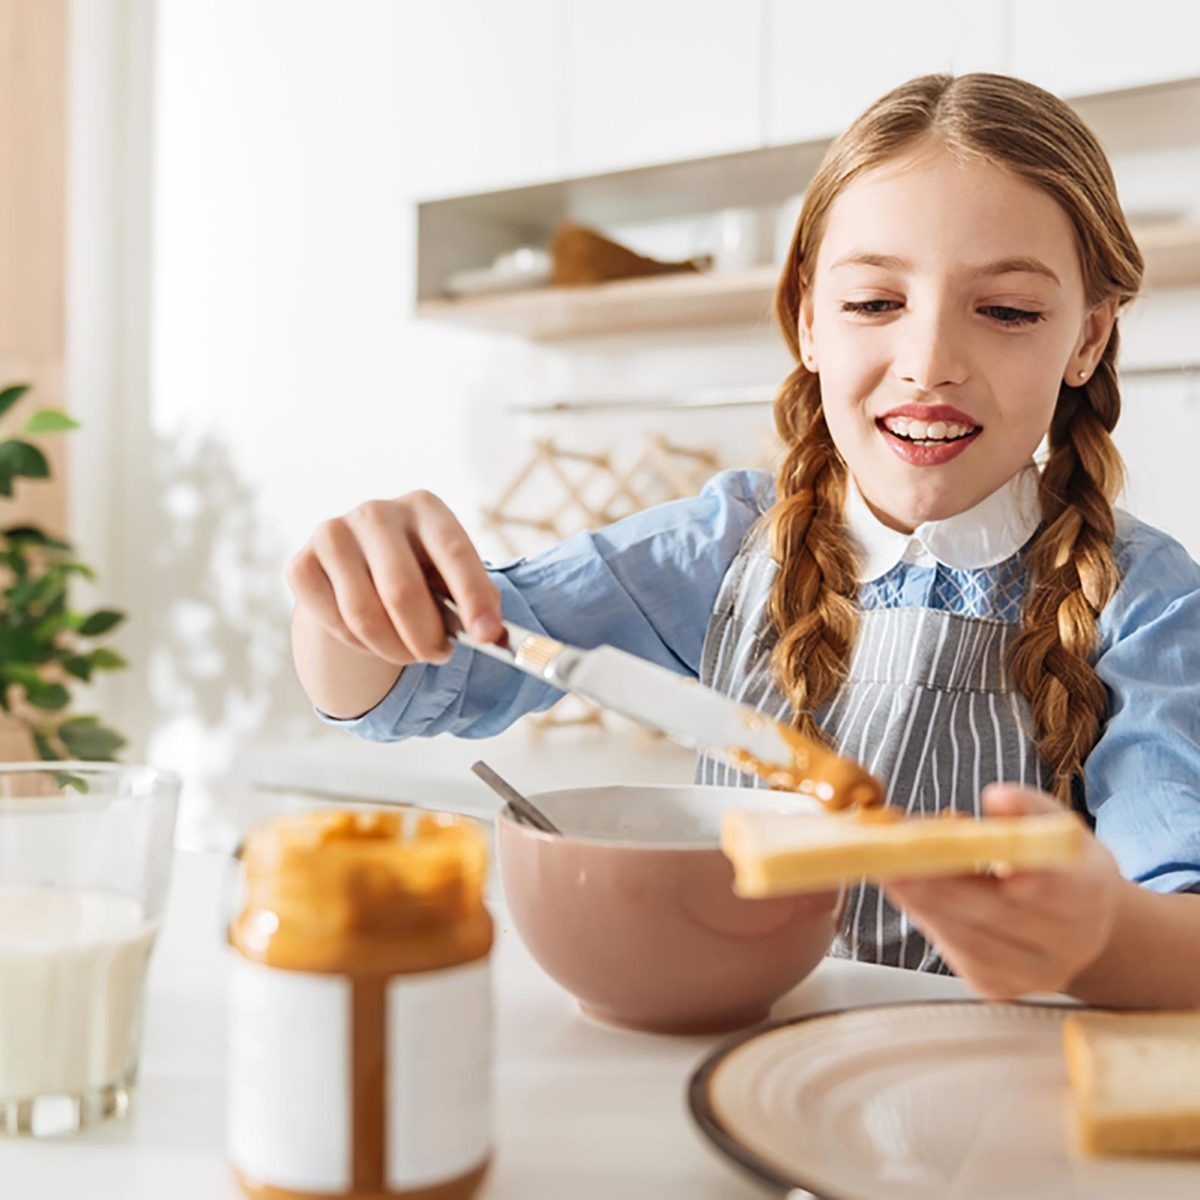 Children say: I eat a lot to be kind